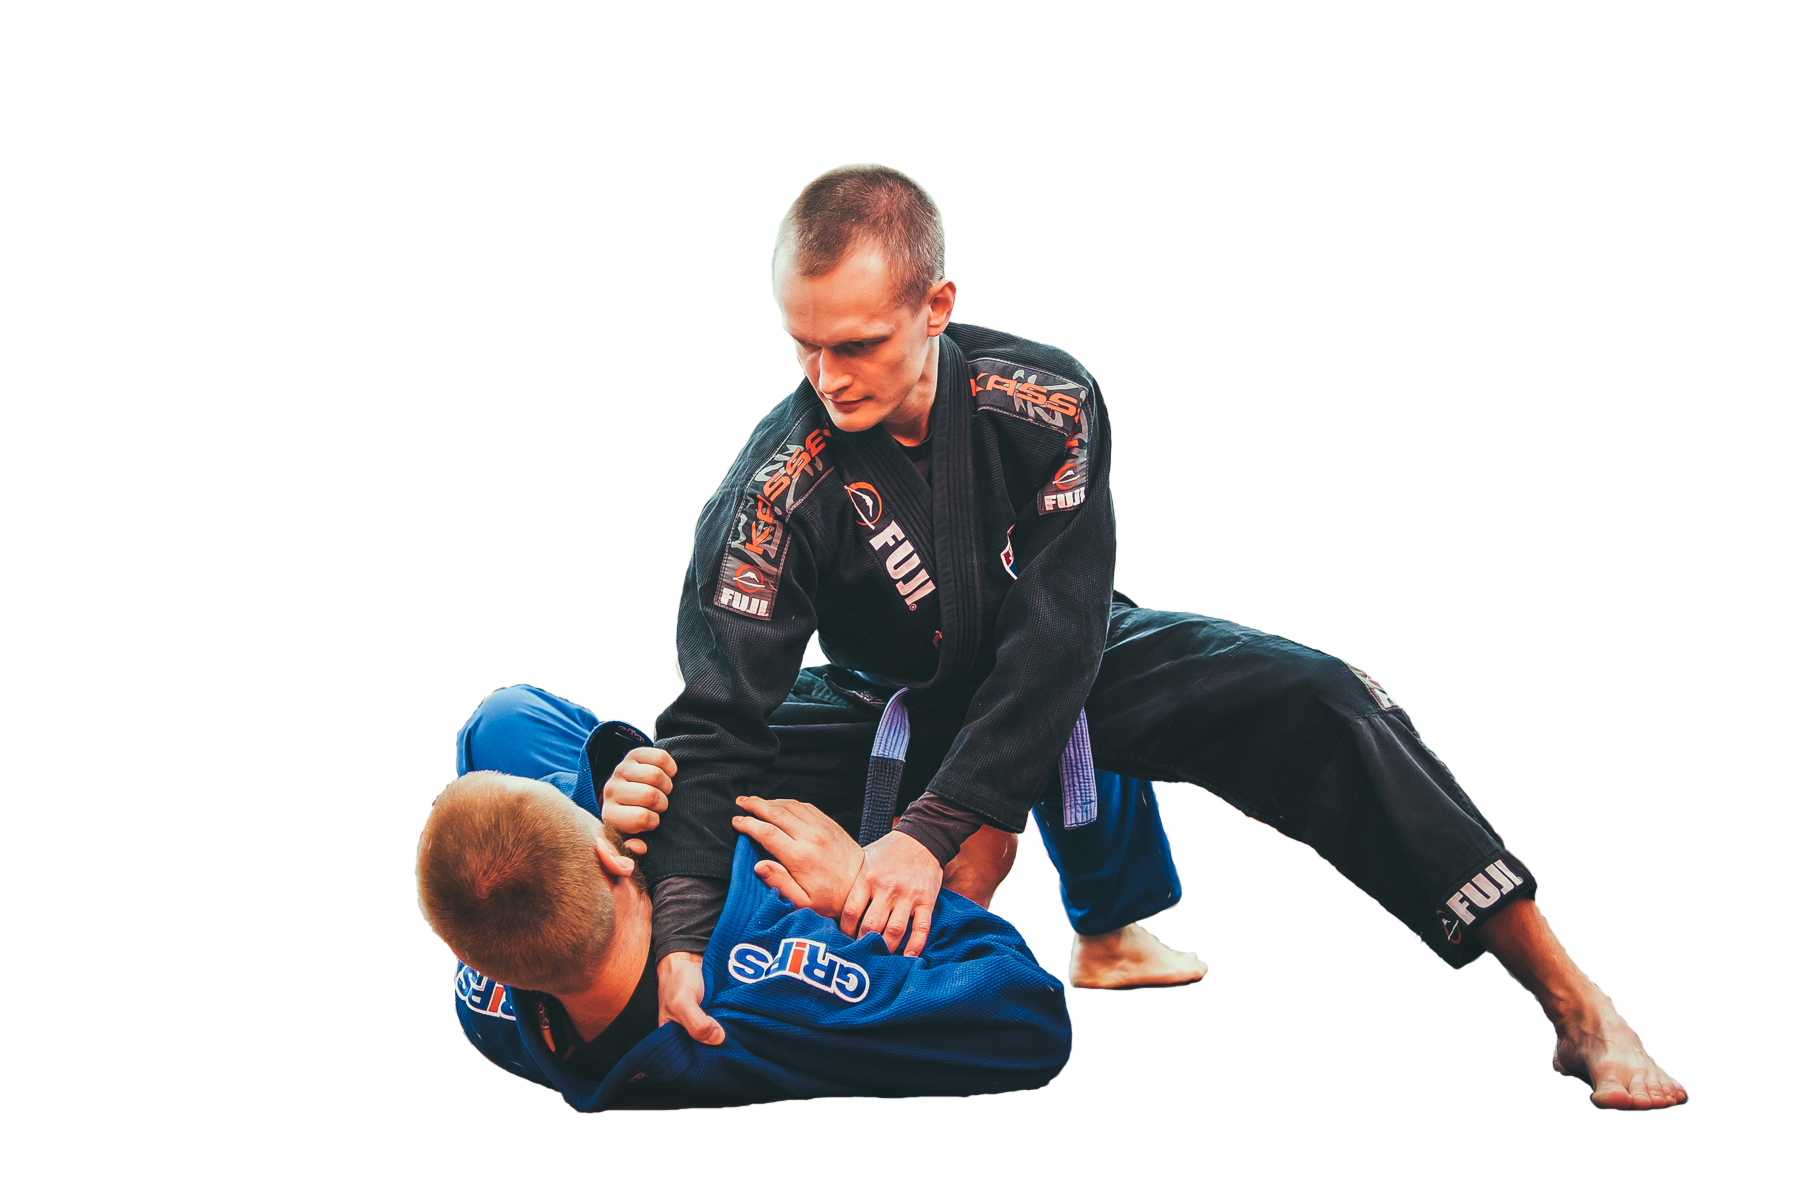 bjj If you enjoyed the film and would like to support future projects a digital download is package available to purchase that includes hours of unseen extras: w.